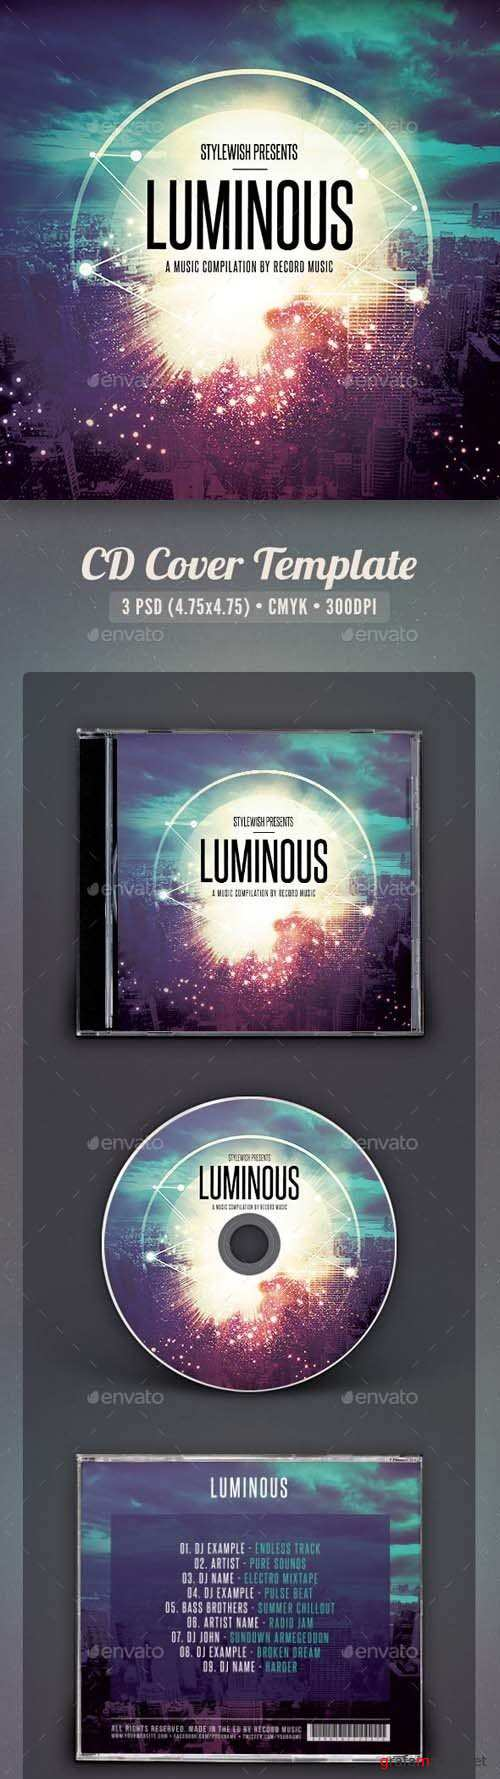 Luminous CD Cover Artwork 15935392